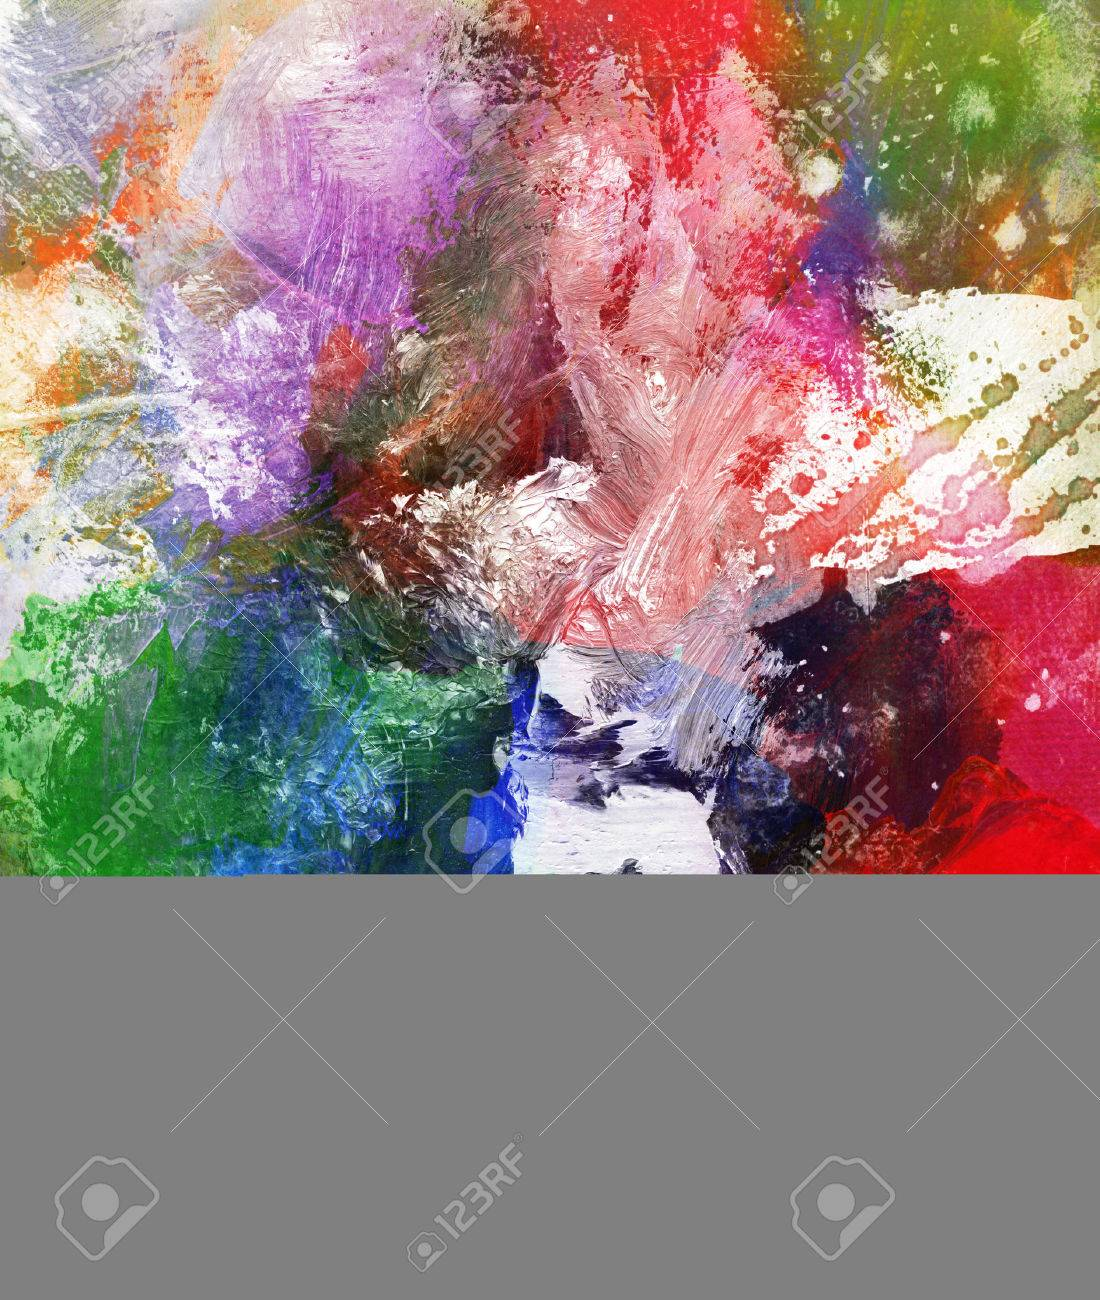 abstract colorful painting with blots and splatter textures Stock Photo - 54414390